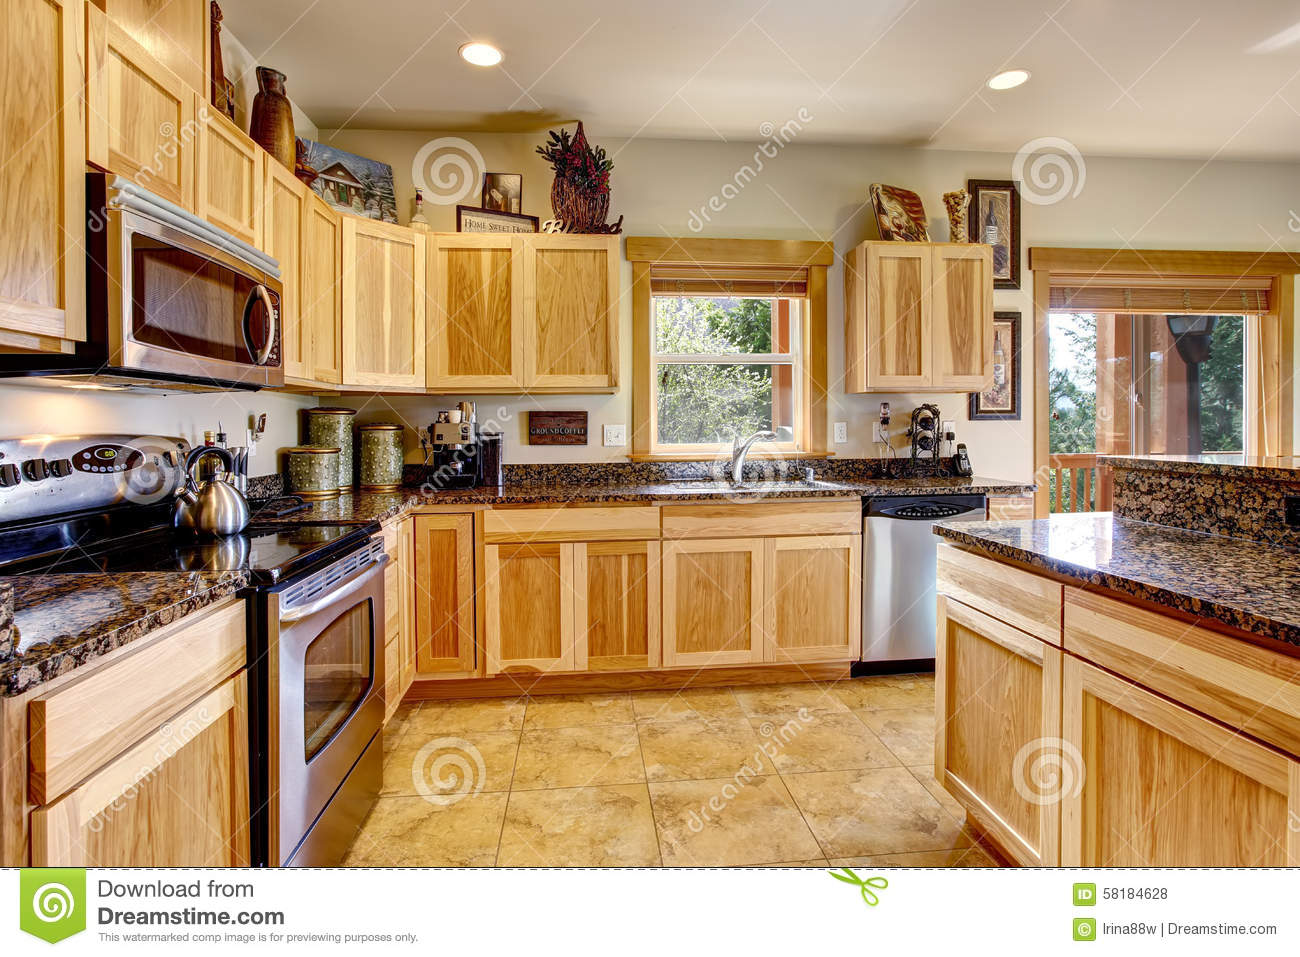 Wooden Mountain Home Kitchen With Golden Tile Floor Stock